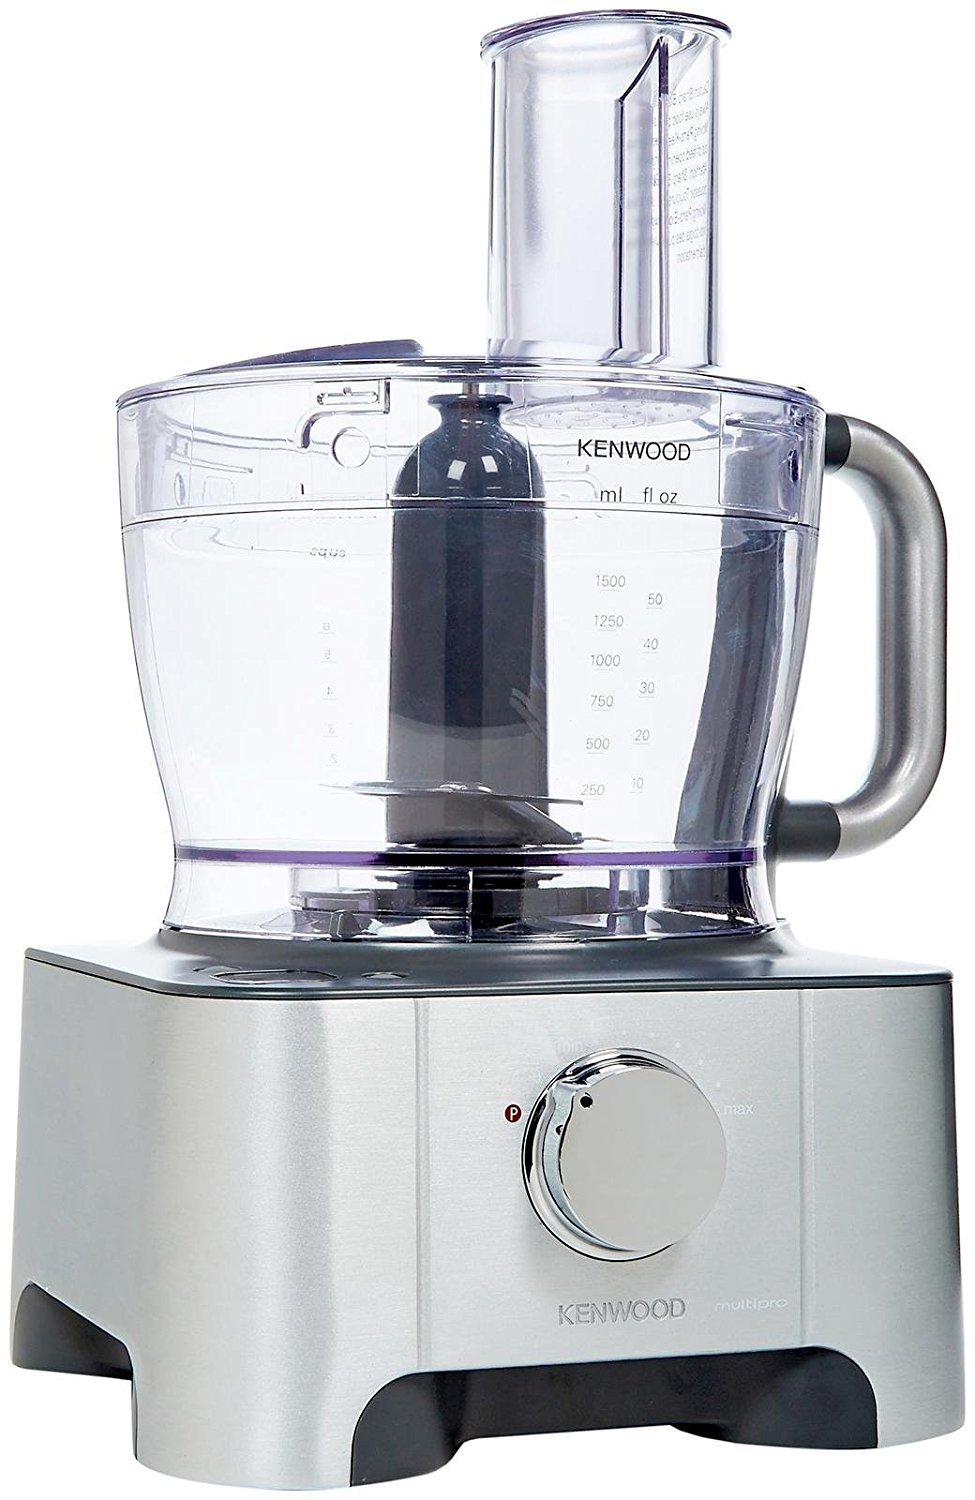 Kenwood FP959 12 Cup Induction Motor Food Processor with Scale, Silver